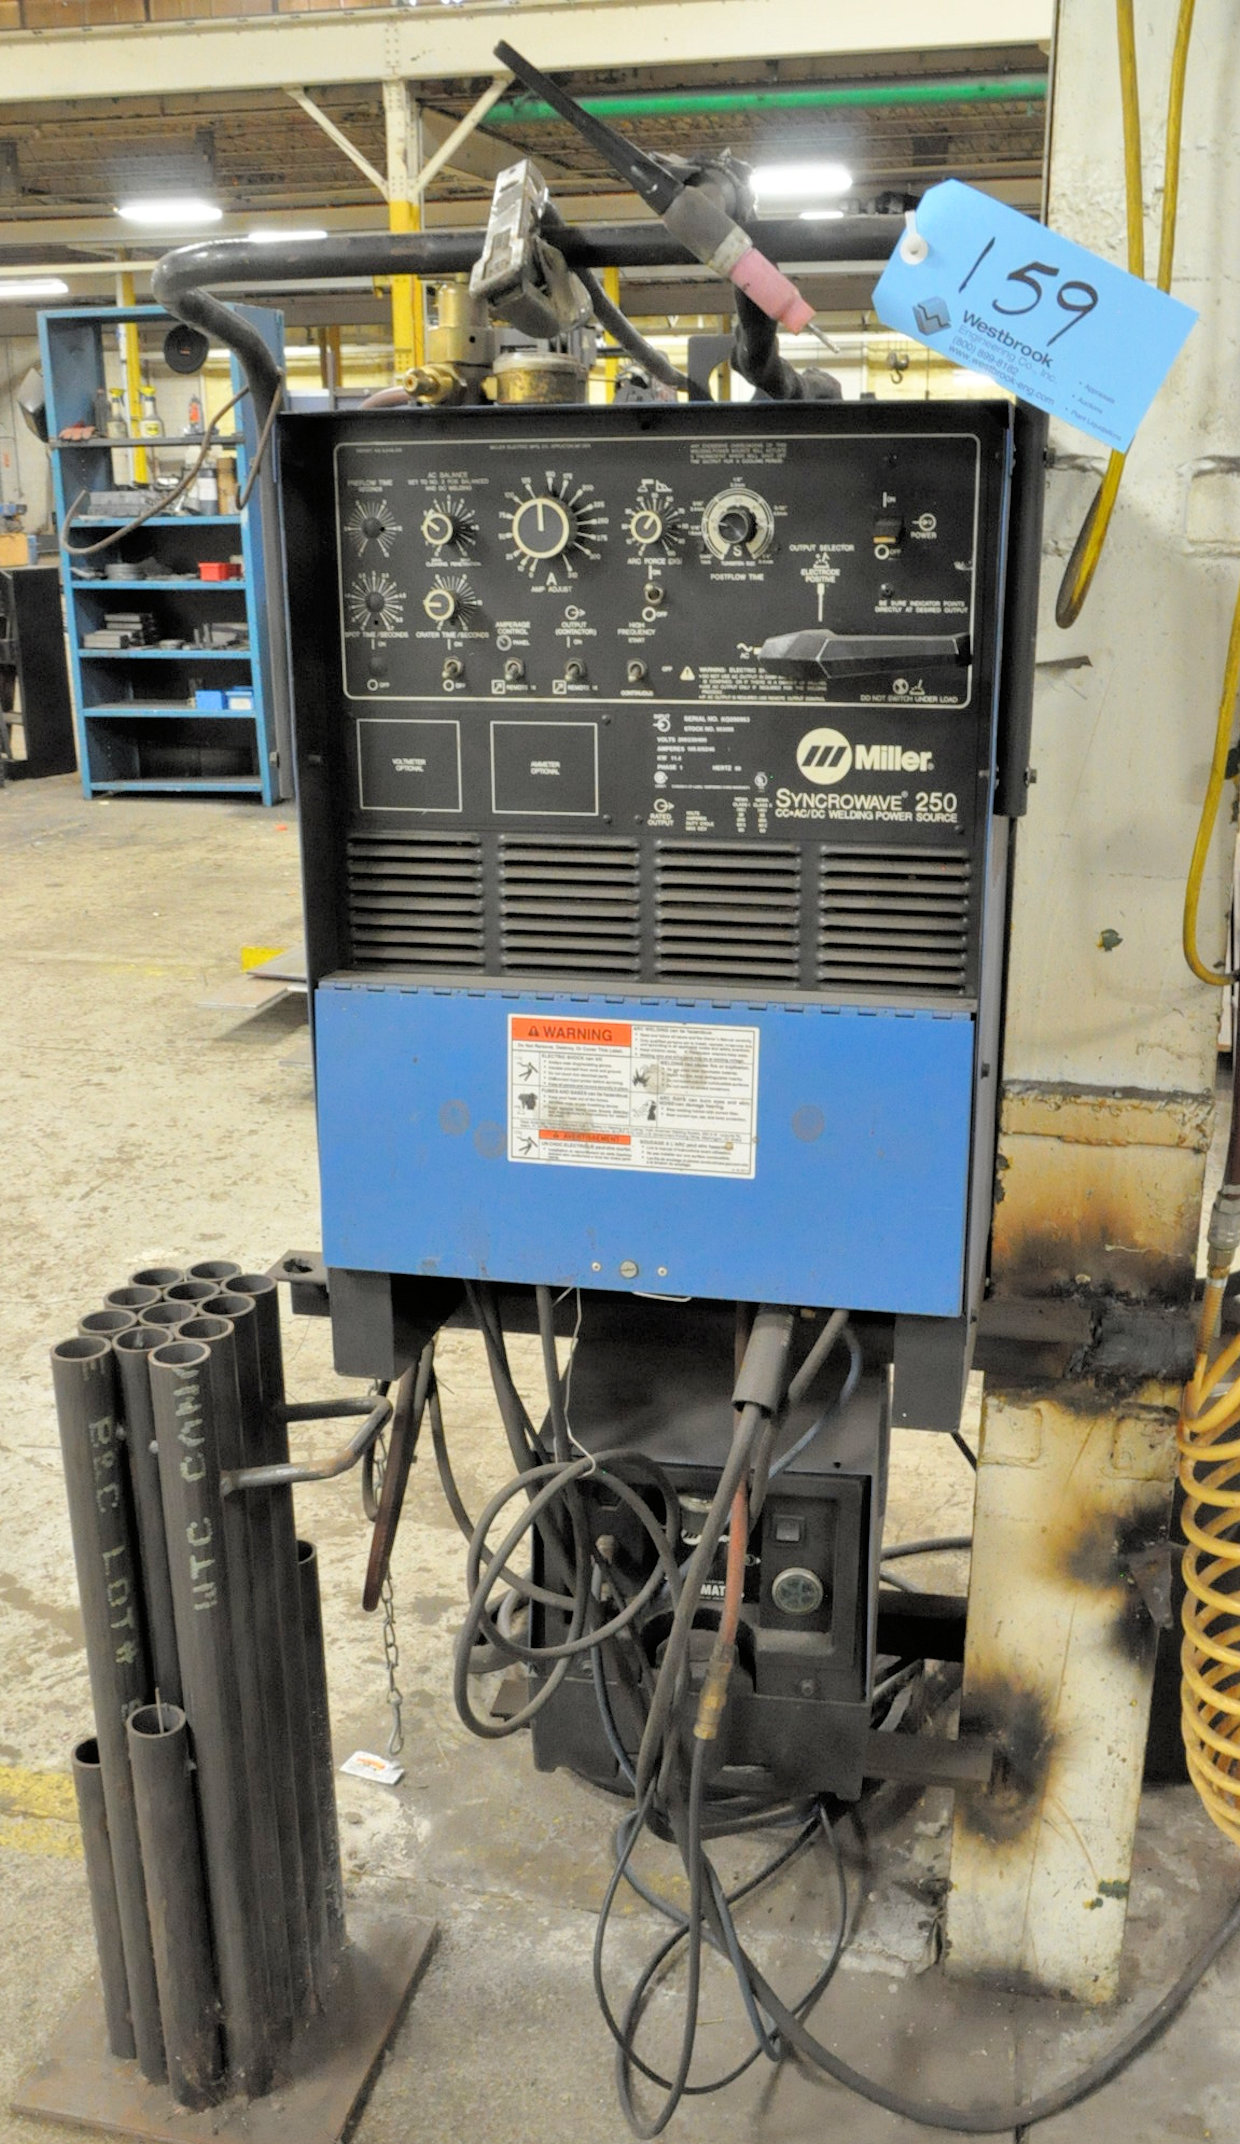 Miller Syncrowave 250, CC AC/DC Tig Welder, S/n KG090963 (1996), with Leads